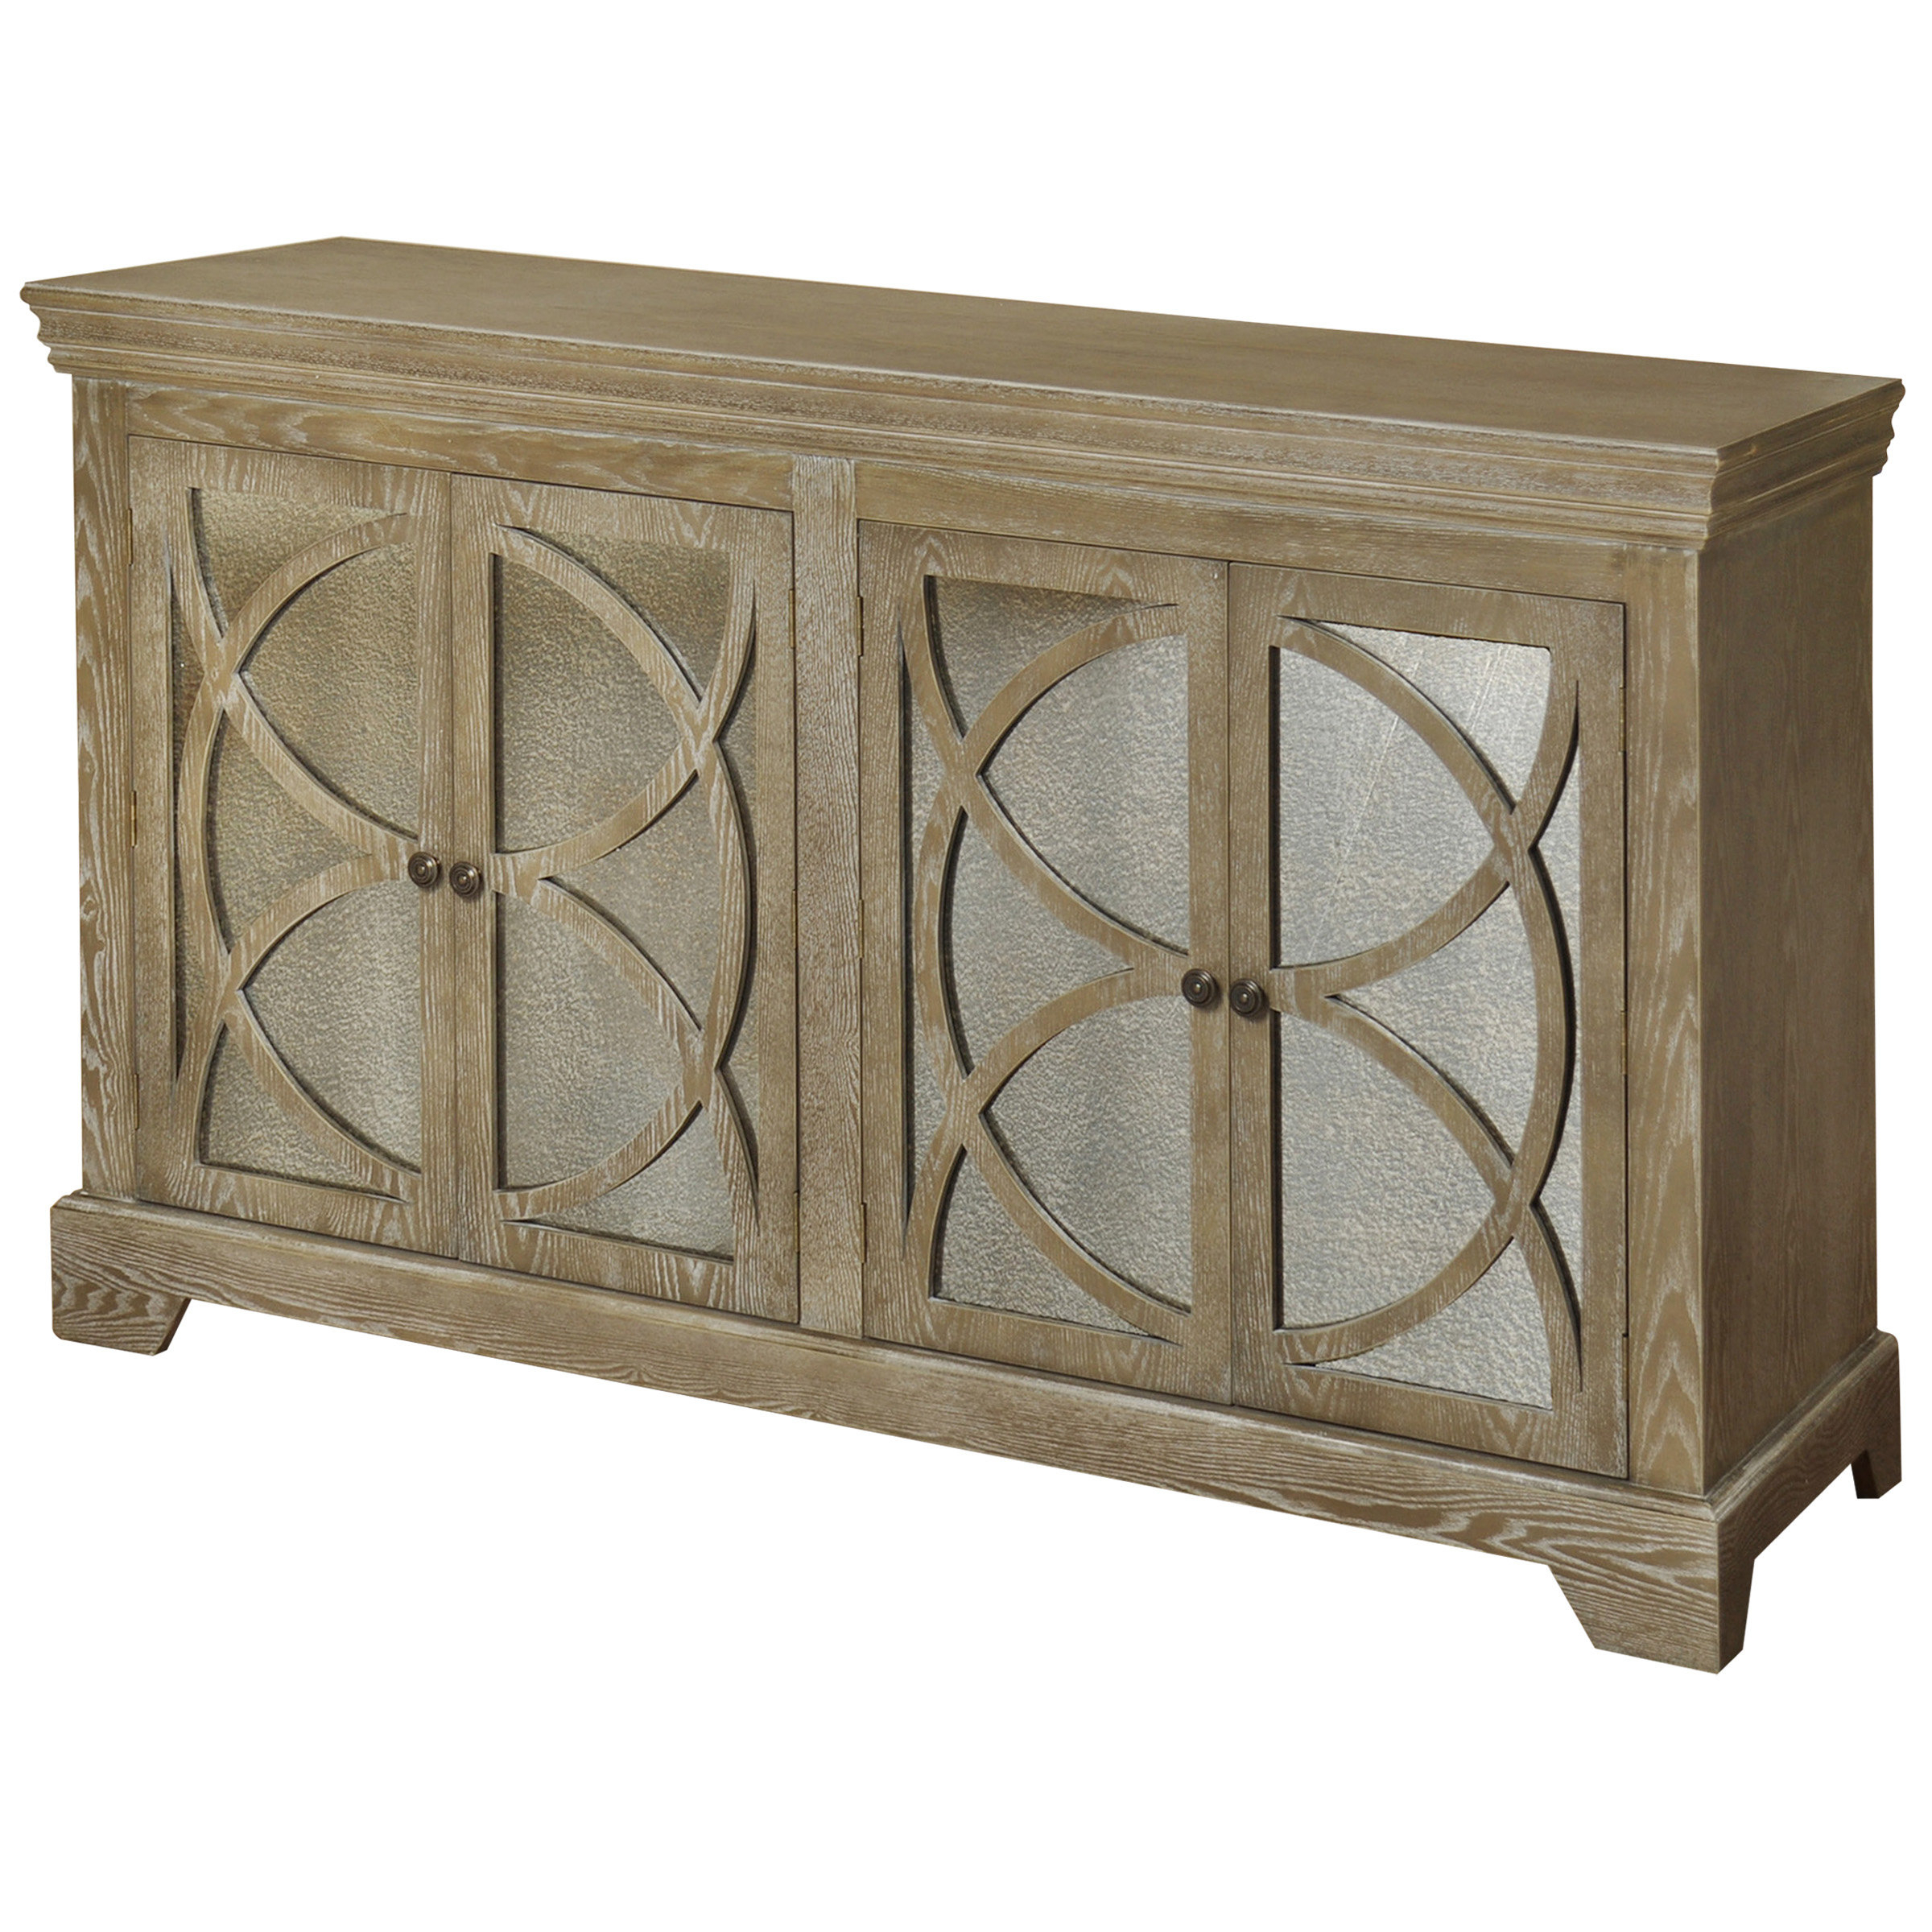 Small Credenza With Doors | Wayfair Within Most Popular Candace Door Credenzas (View 2 of 20)